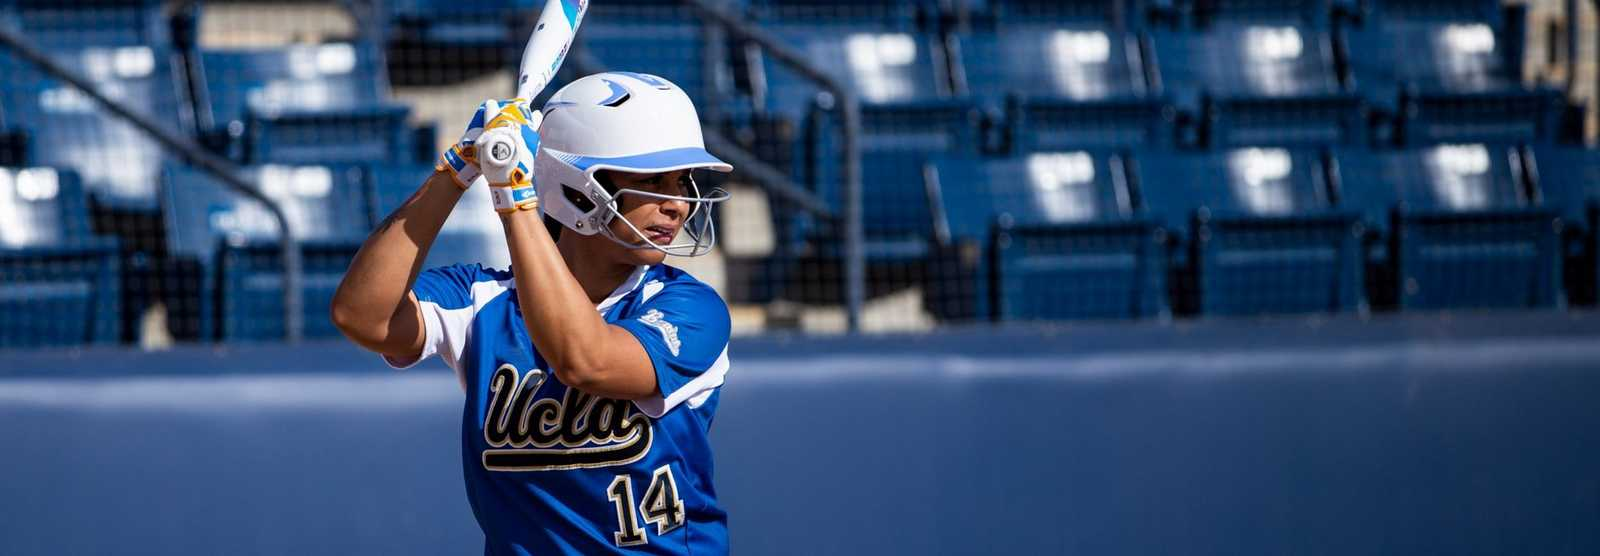 fastpitch-ncaa-softball-ucla